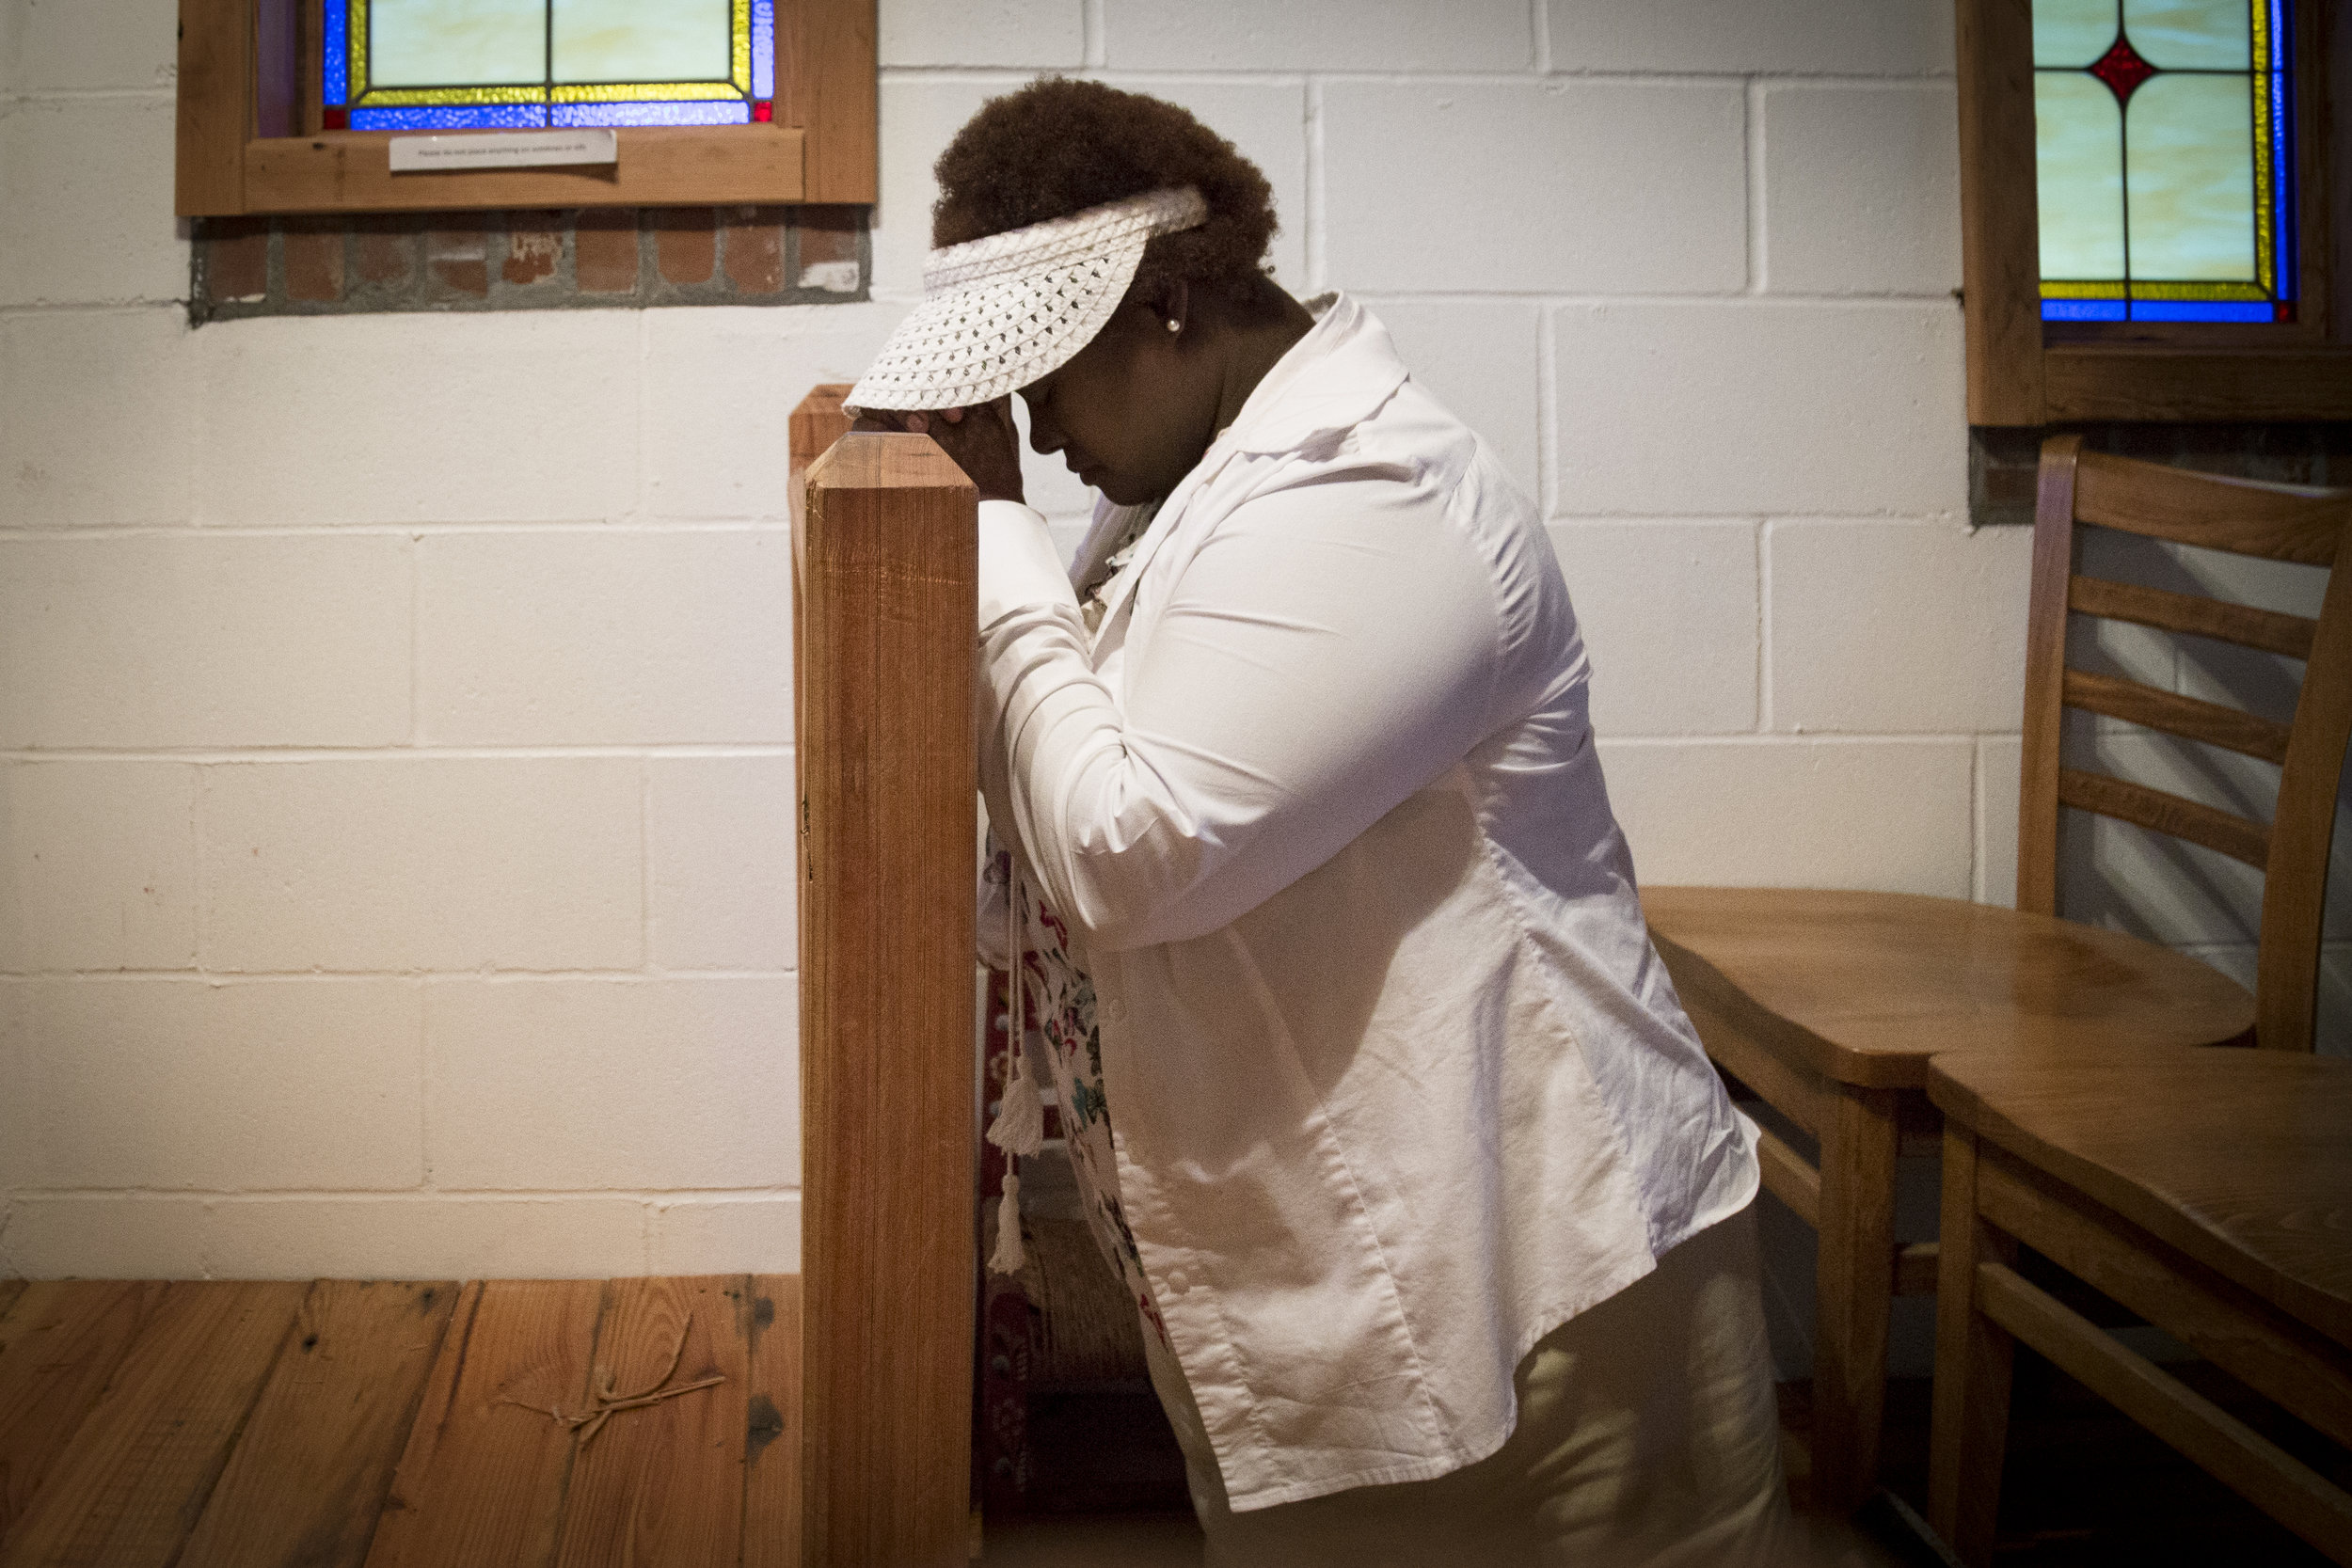 """""""This was my place of solace,"""" says TeeCervantes, a former local, who has been coming to the church for """"decades."""" She now resides in Arizona, and stopped by the church while home to visit family."""